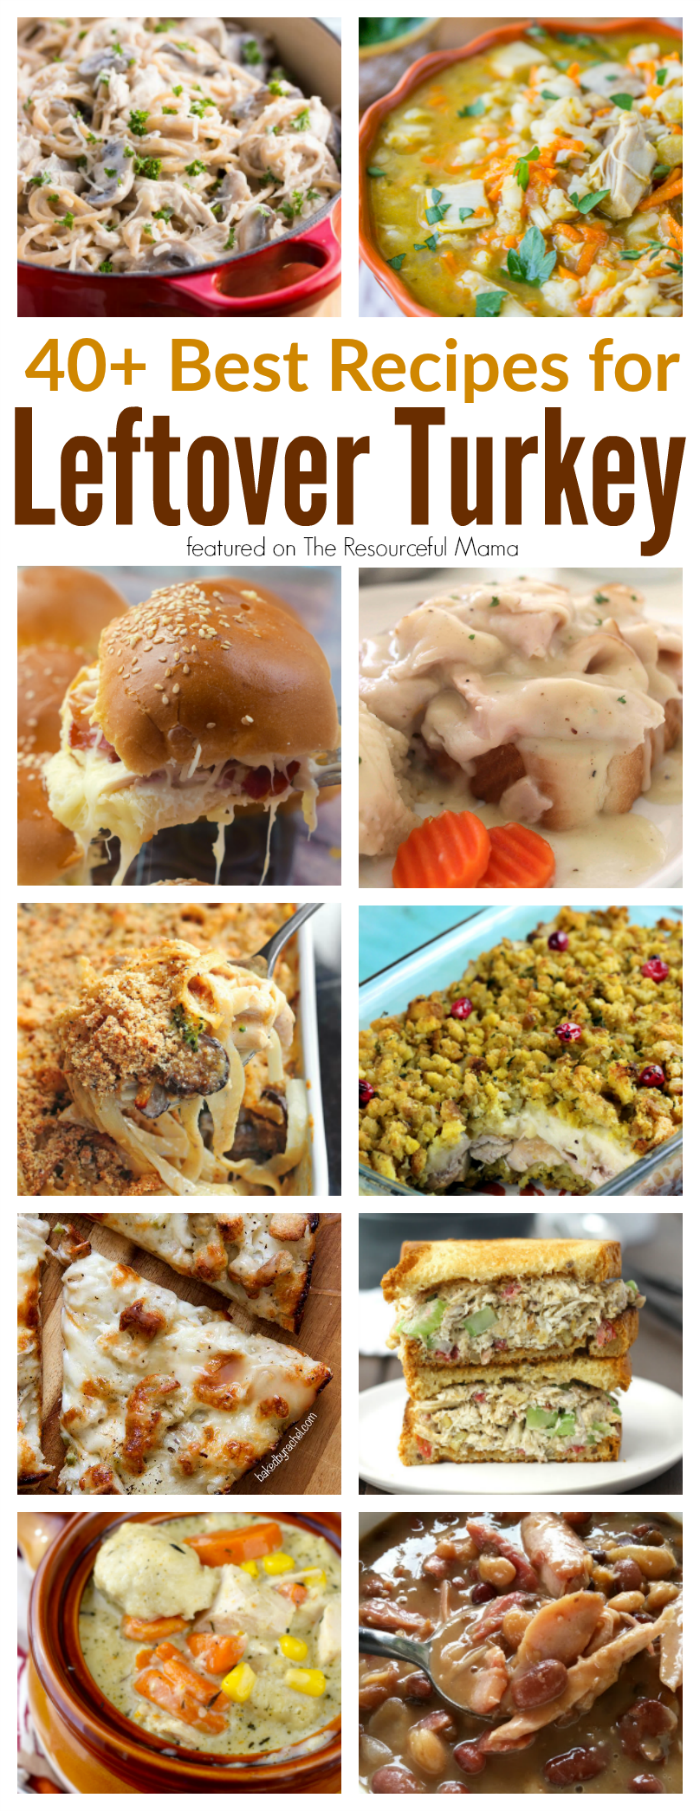 Transform leftover turkey from Thanksgiving into some amazing recipes including : casseroles, soups, sandwiches, pizza and more.